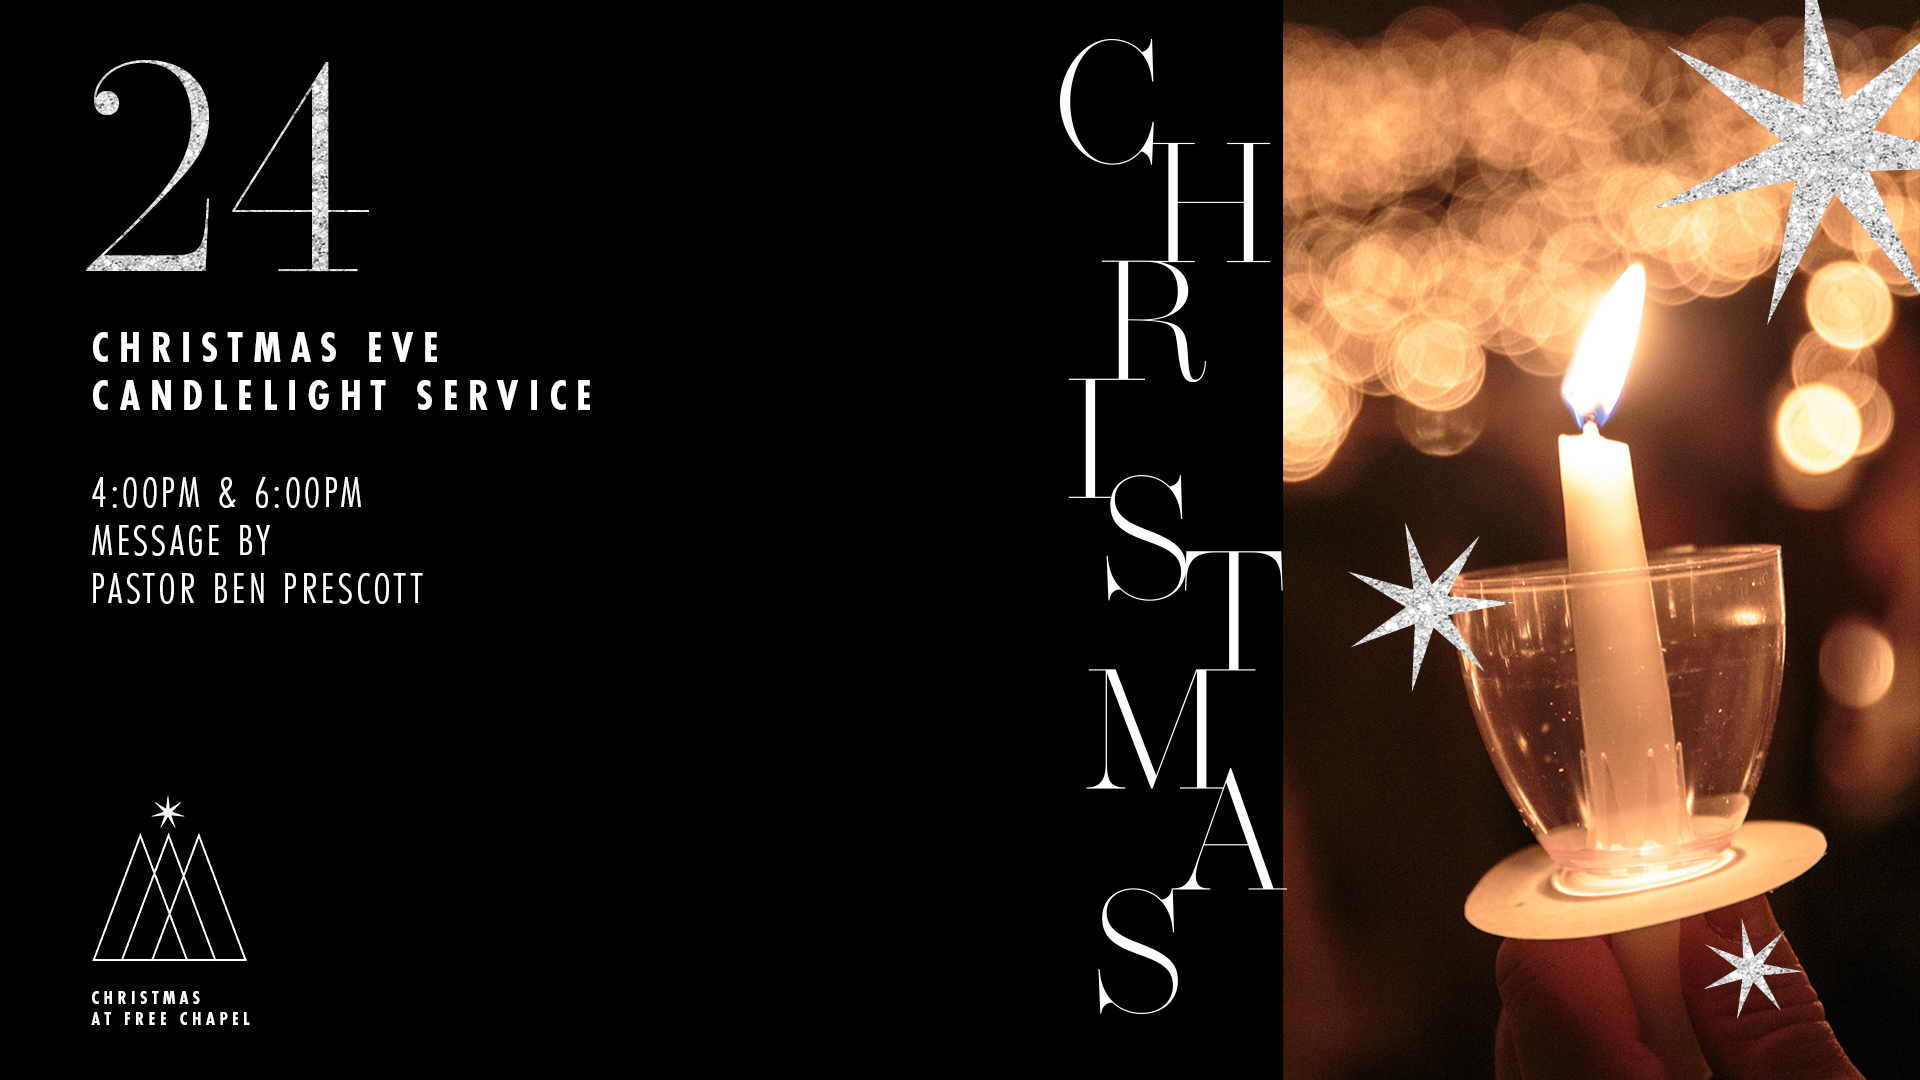 Christmas Eve Candlelight Service at the Orange County campus